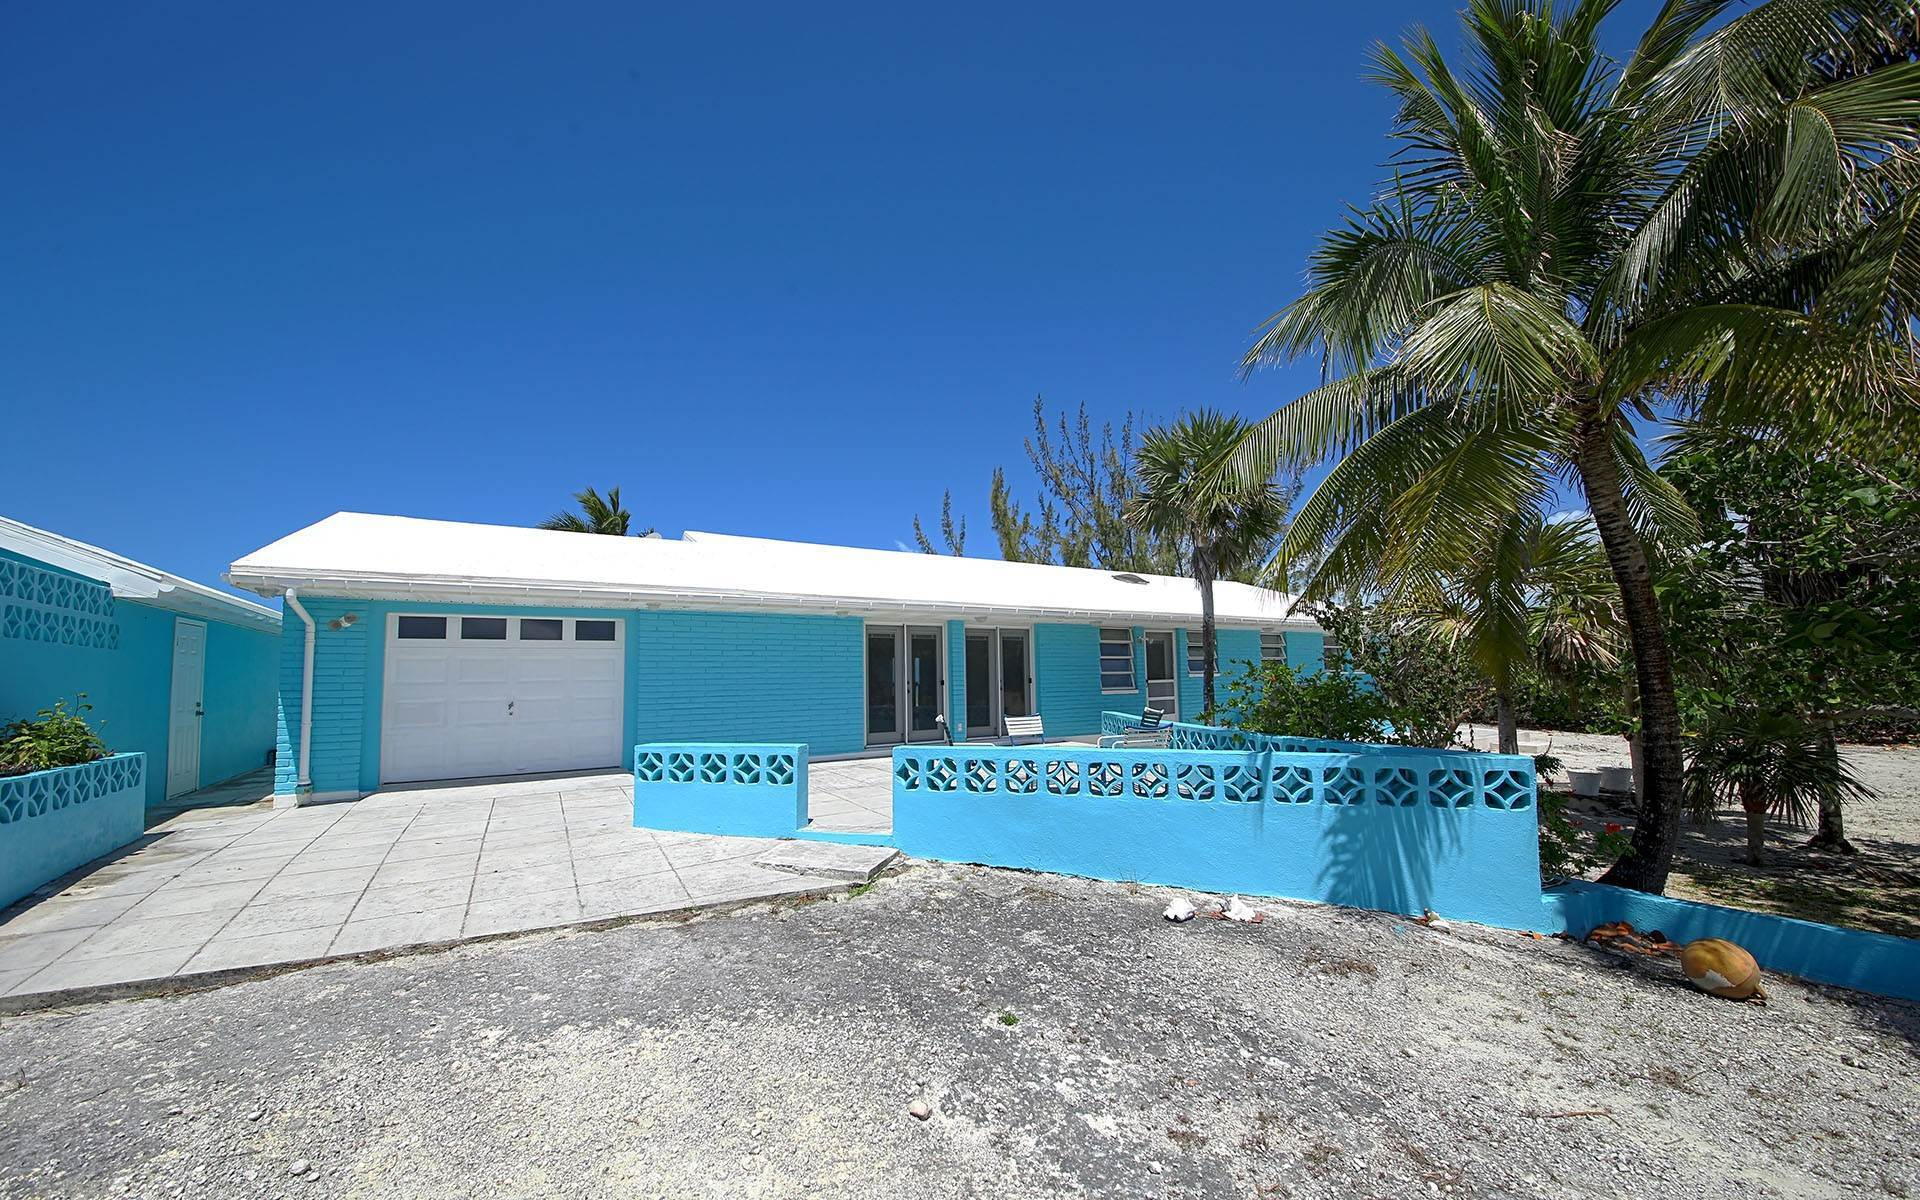 Single Family Homes for Sale at Cat Island beachfront home - MLS 36354 Hawks Nest, Cat Island, Bahamas